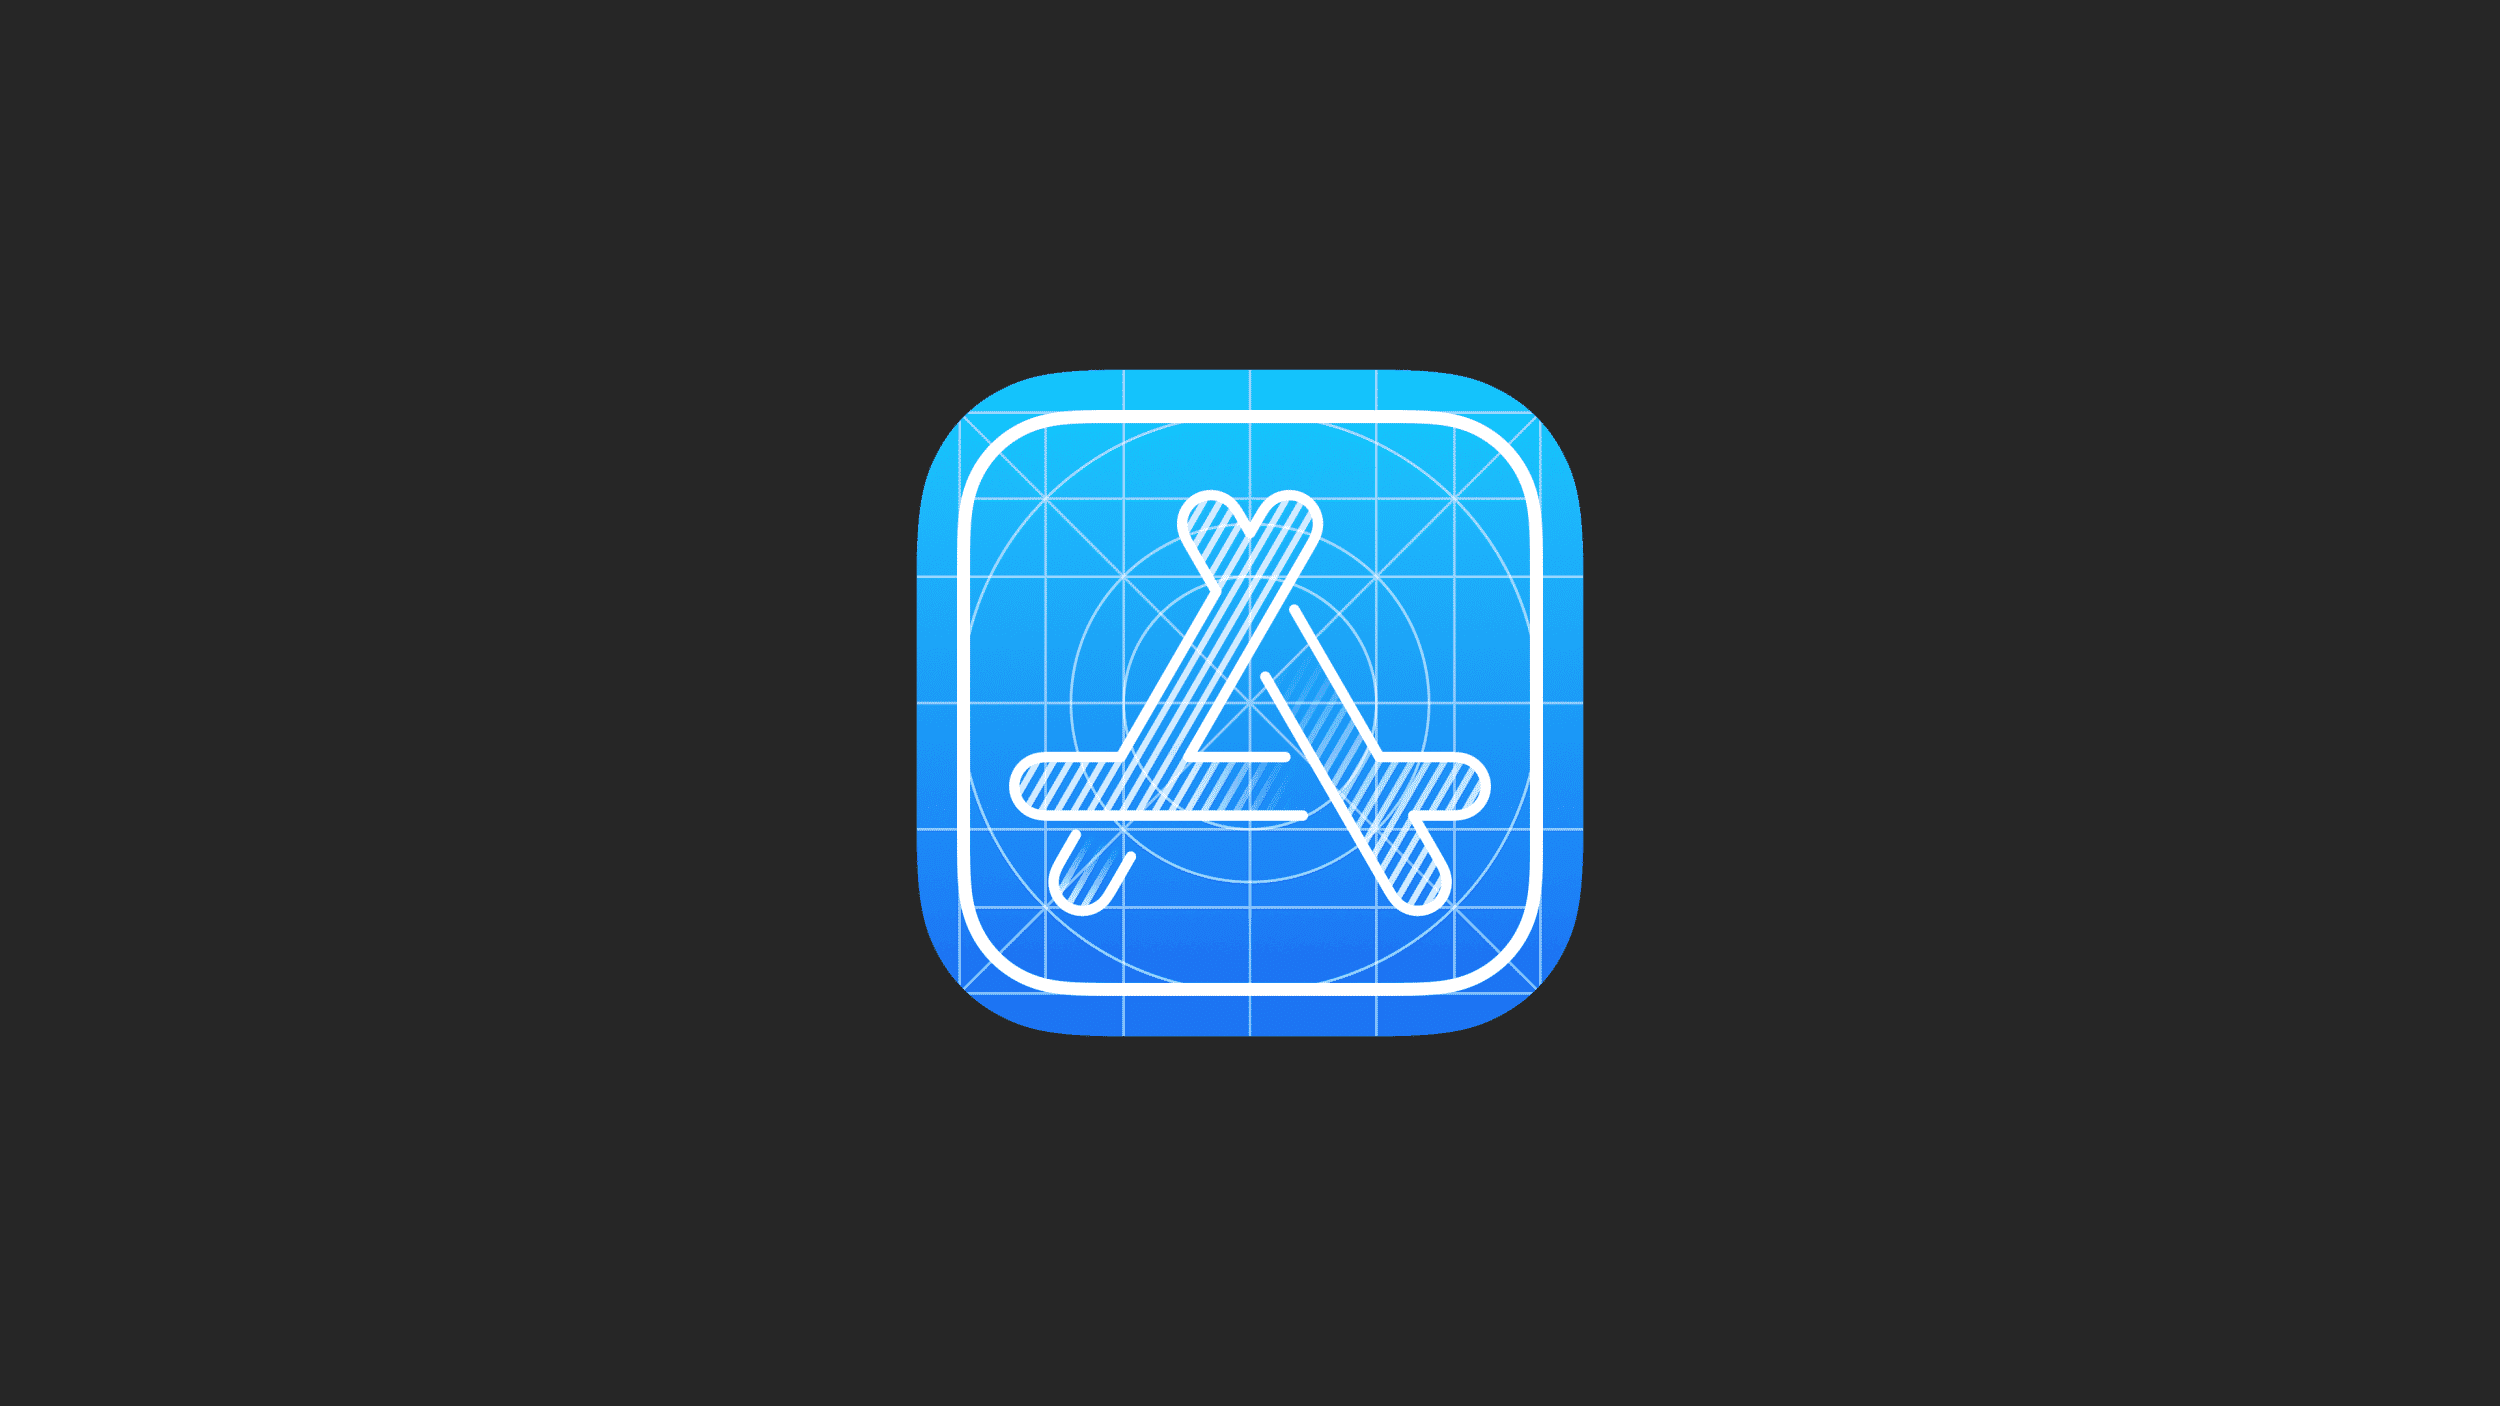 WWDC App Updated with New Name and Content